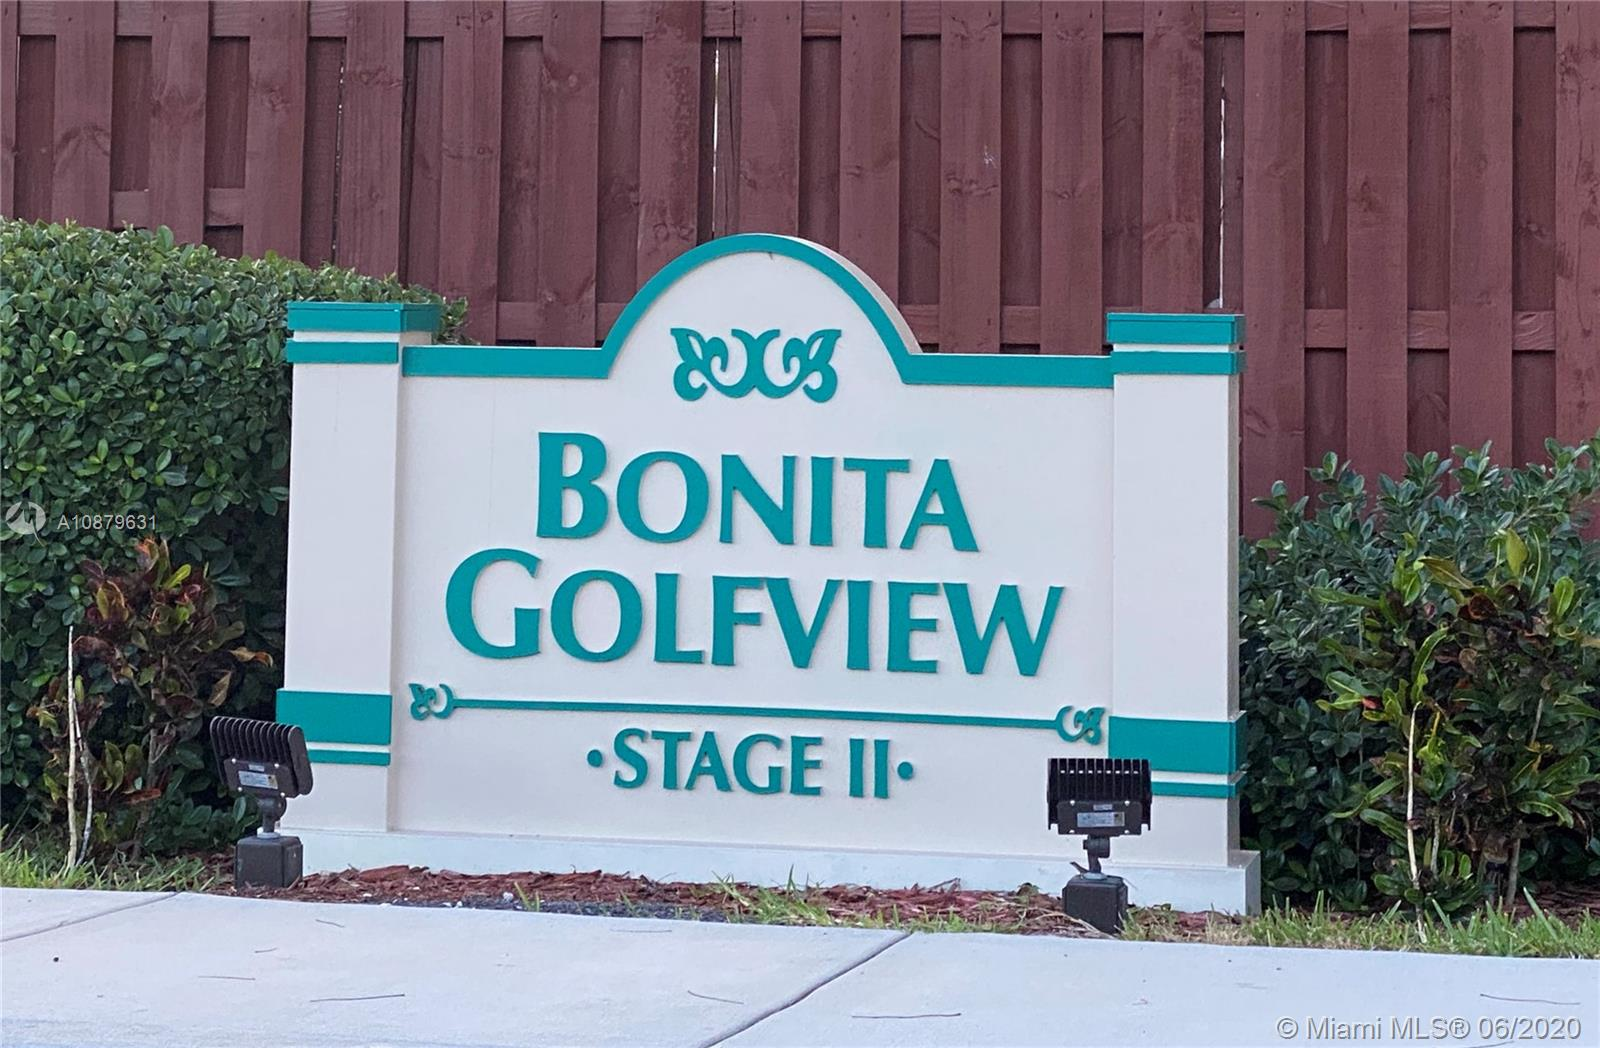 Remodeled townhome features new impact resistant windows and doors to the back patio as well as upstairs master bedroom balcony.  Gray wood-like porcelain tile floors throughout.  Downstairs you will enjoy a comfy living & dining area with a half bath followed by the beautifully remodeled kitchen new SS appliances & gray wood cabinets and granite counters including desk/study area in nook and white wood kitchen island for contrast.  Upstairs features 2 bedrooms including master with balcony.  Back patio is tiled and has a new awning to enhance your outdoor enjoyment and entertaining. The community is centrally located near Palmetto 67th Ave Exit also has easy access to I-75 Miami Gardens Dr Exit and is only minutes from Broward County.  Note that current washer/dryer are not included